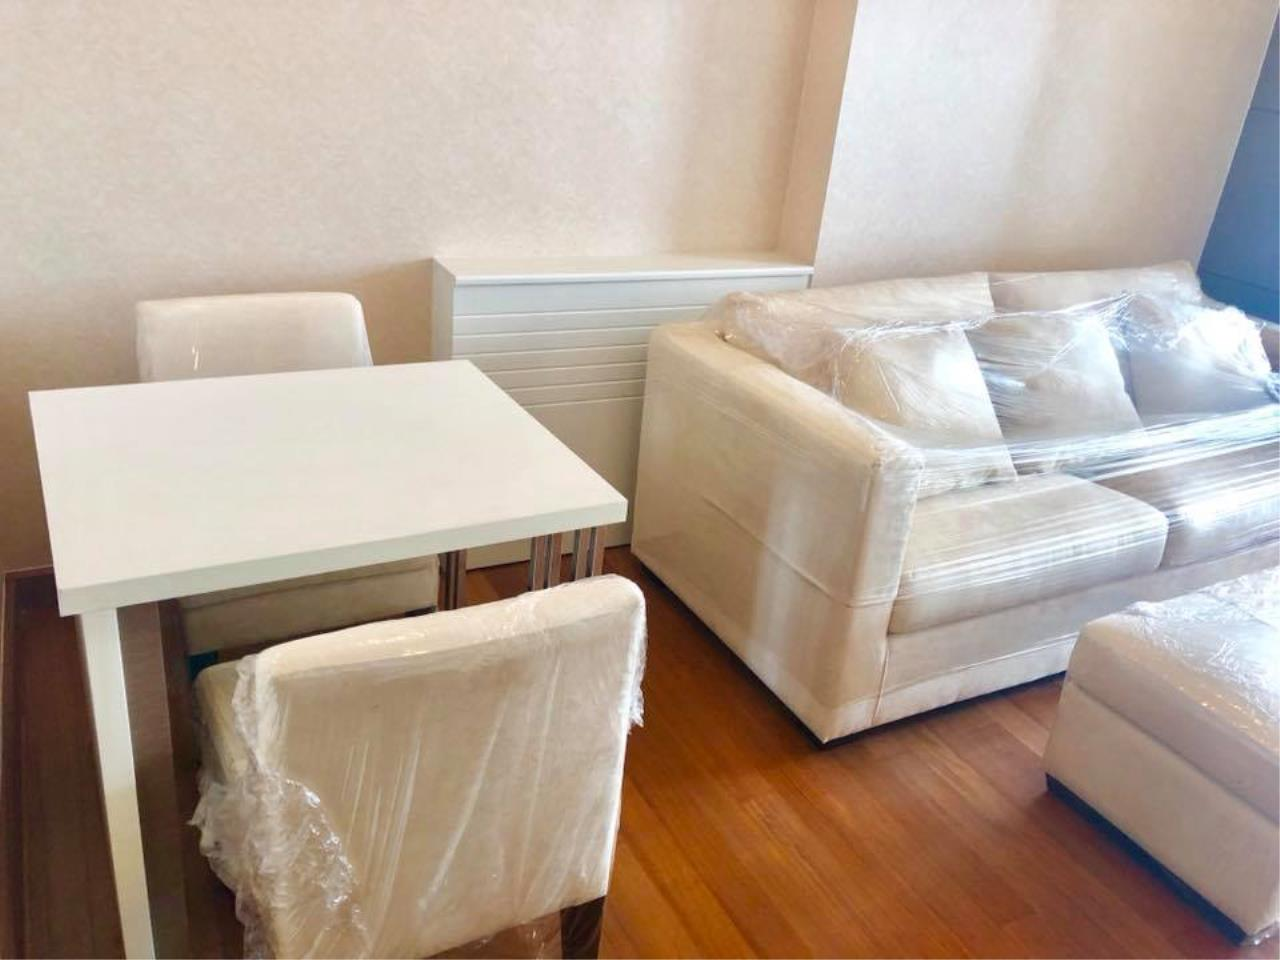 Quality Life Property Agency's S A L E !! || IVY SATHORN 10|| 1BR 33.64 Sq.m. NEW UNIT!! 5